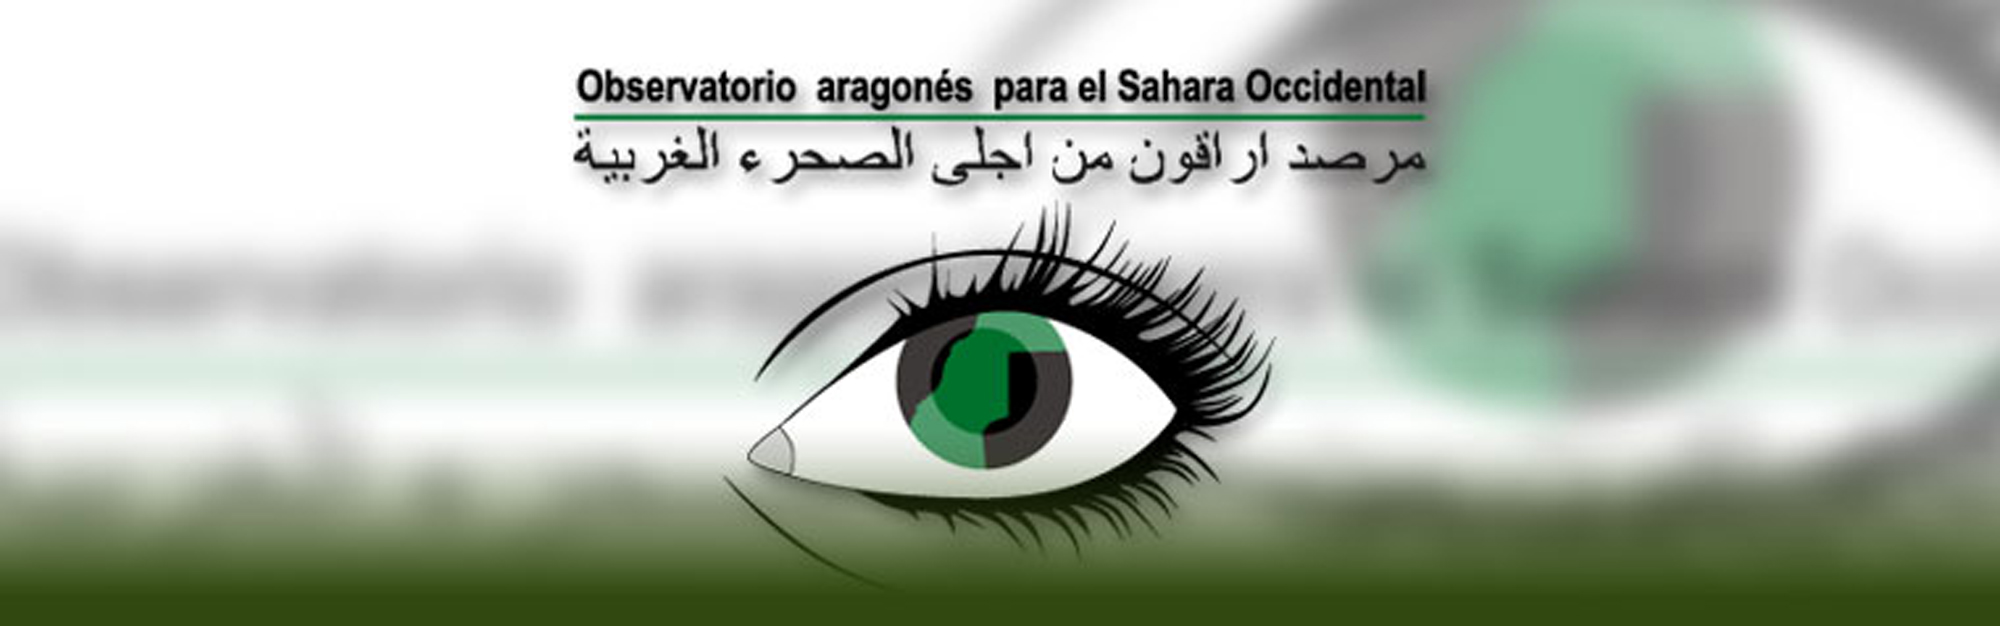 Observatorio Aragones para el Sahara Occidental